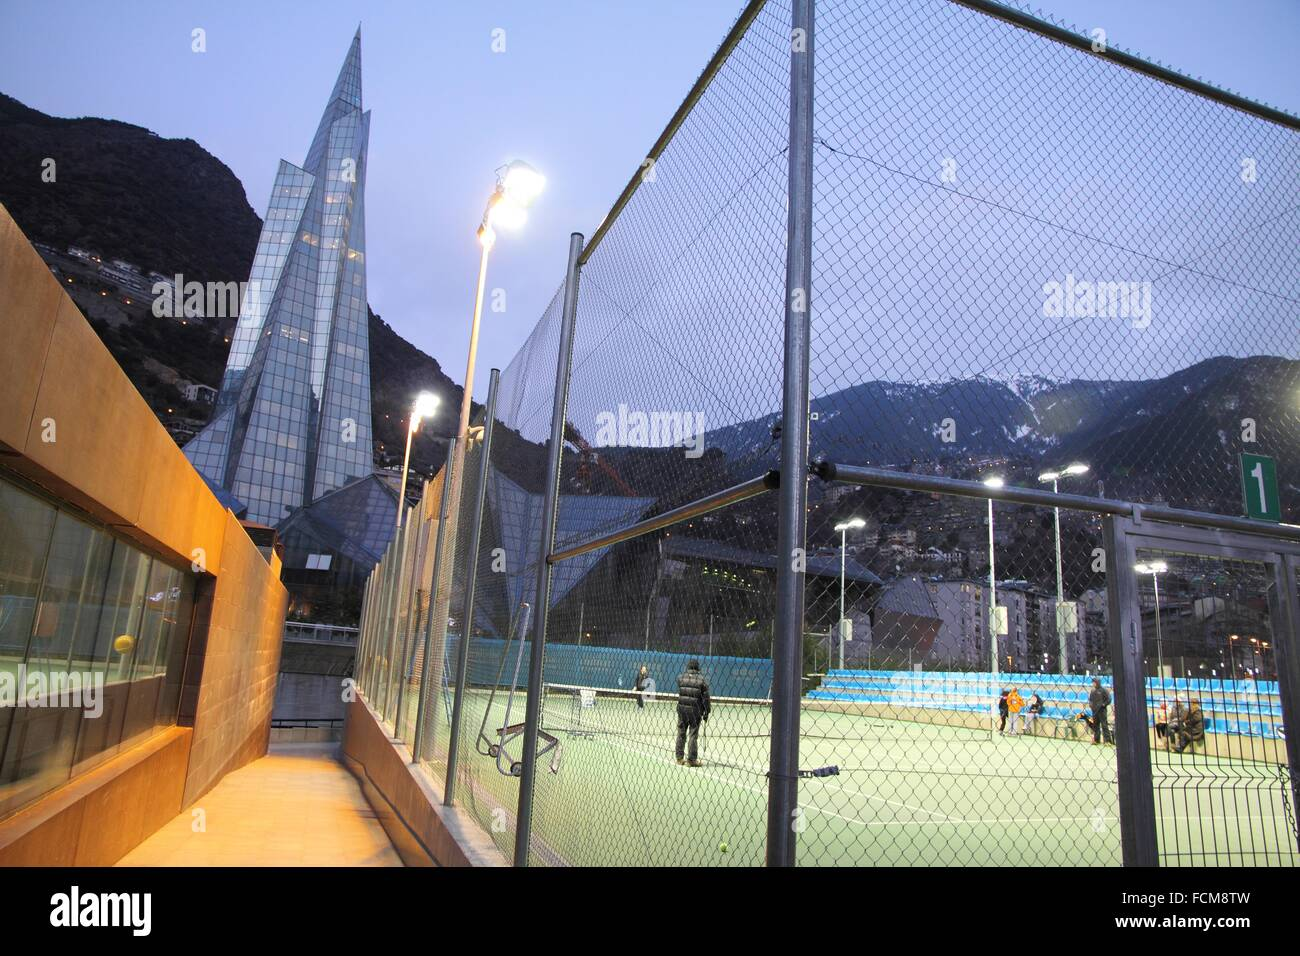 ANDORRA-FEBRUARY 23: People playing tennis in the city centre on February 23, 2013 in Andorra la Vella buildings Stock Photo